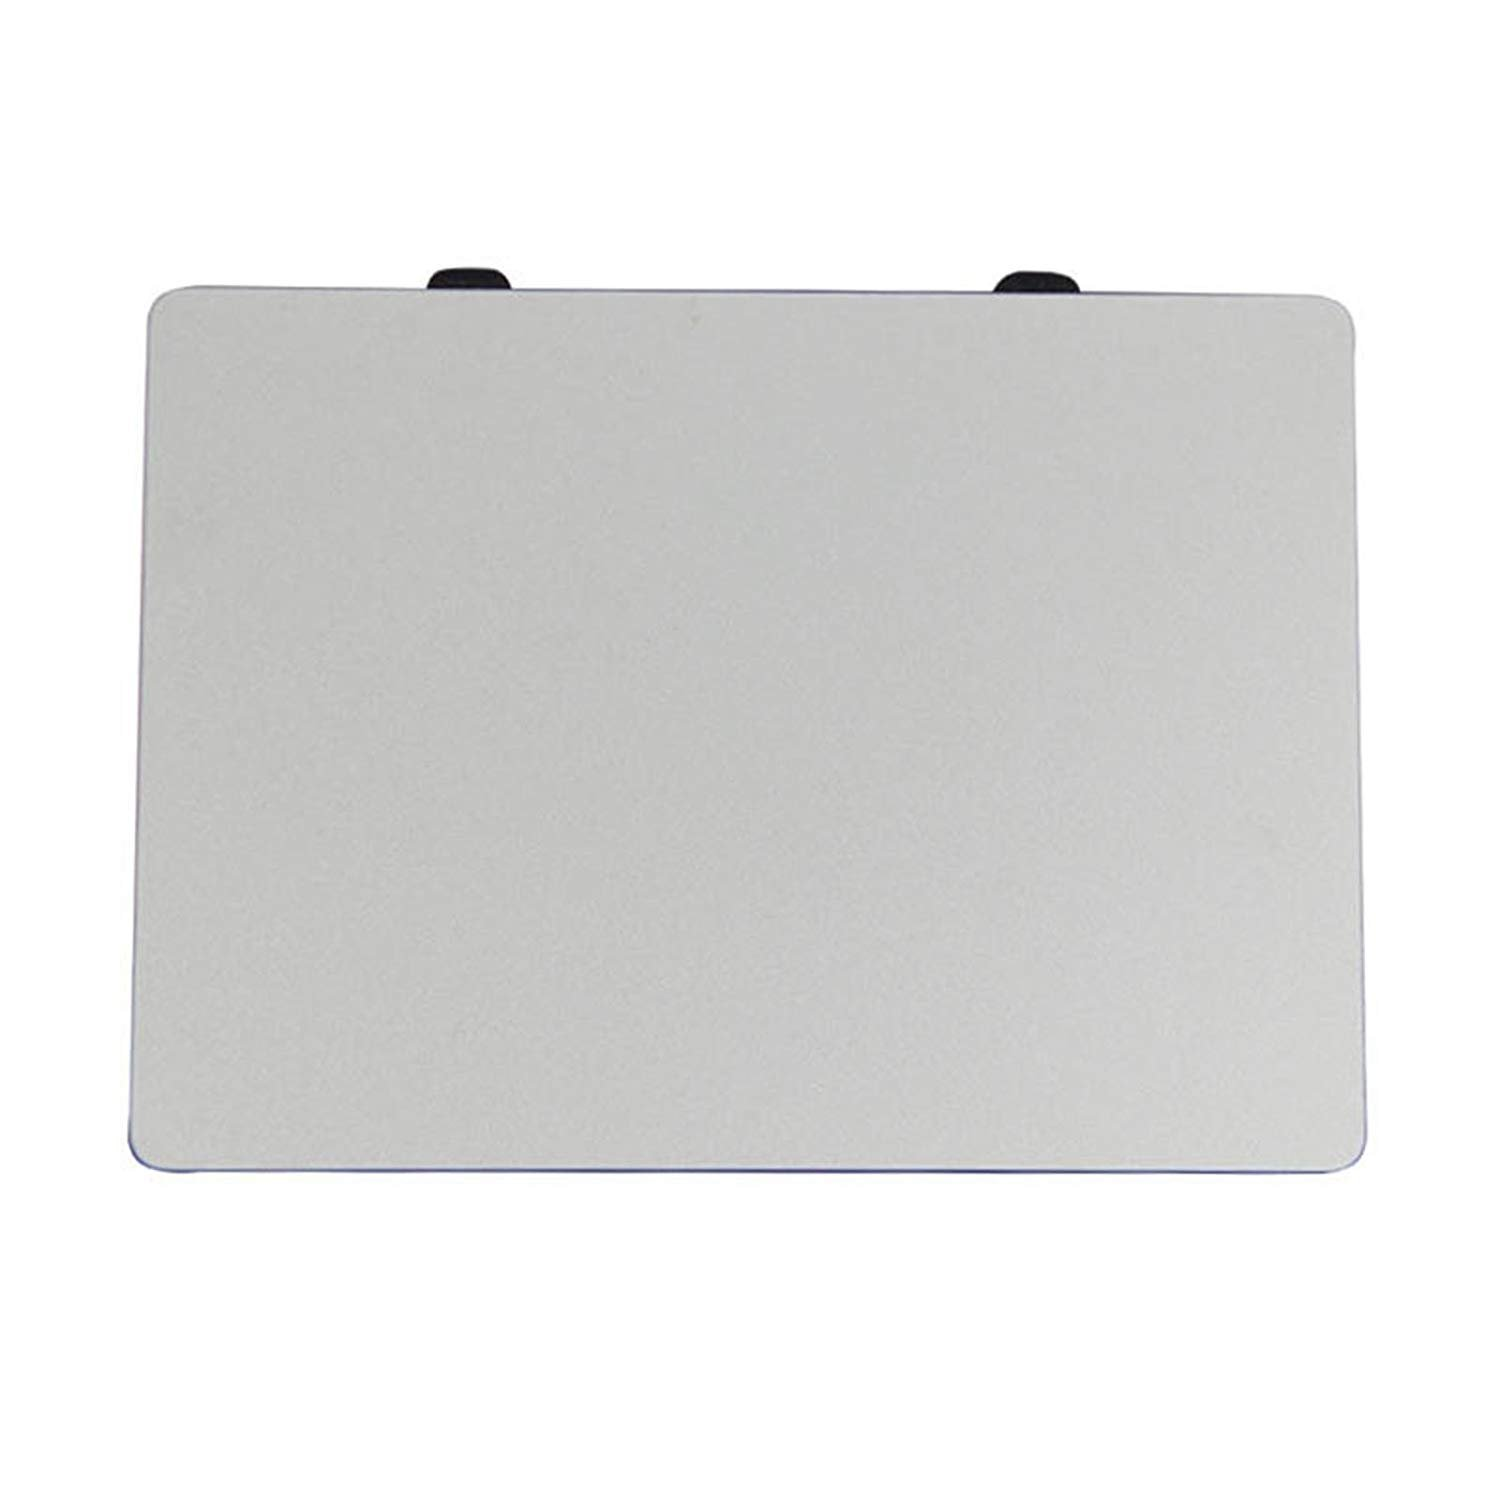 HUSAN Trackpad Compatible for MacBook Pro 13'' A1278 (Mid 2009 Mid 2010 Early 2011 Late 2011 Mid 2012 version) & Fit for MacBook Pro 15'' Unibody A1286 (2009 2010 2011 2012 version) without Flex Cable by HUSAN (Image #2)